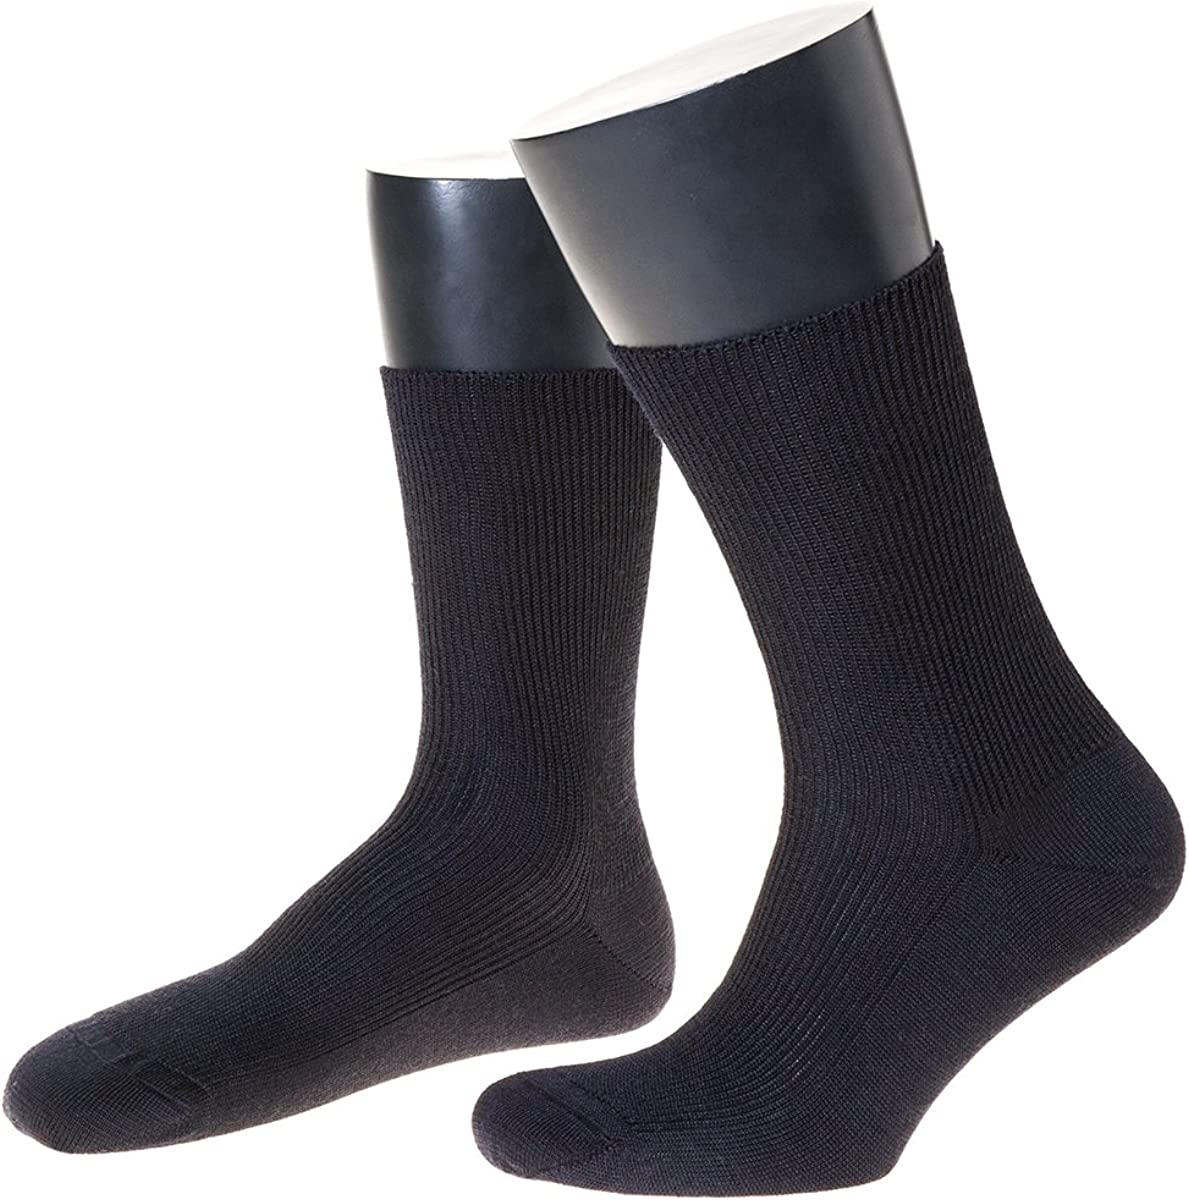 Made in Germany 3 Paar Schurwoll-Socken 100/% Schurwolle Business